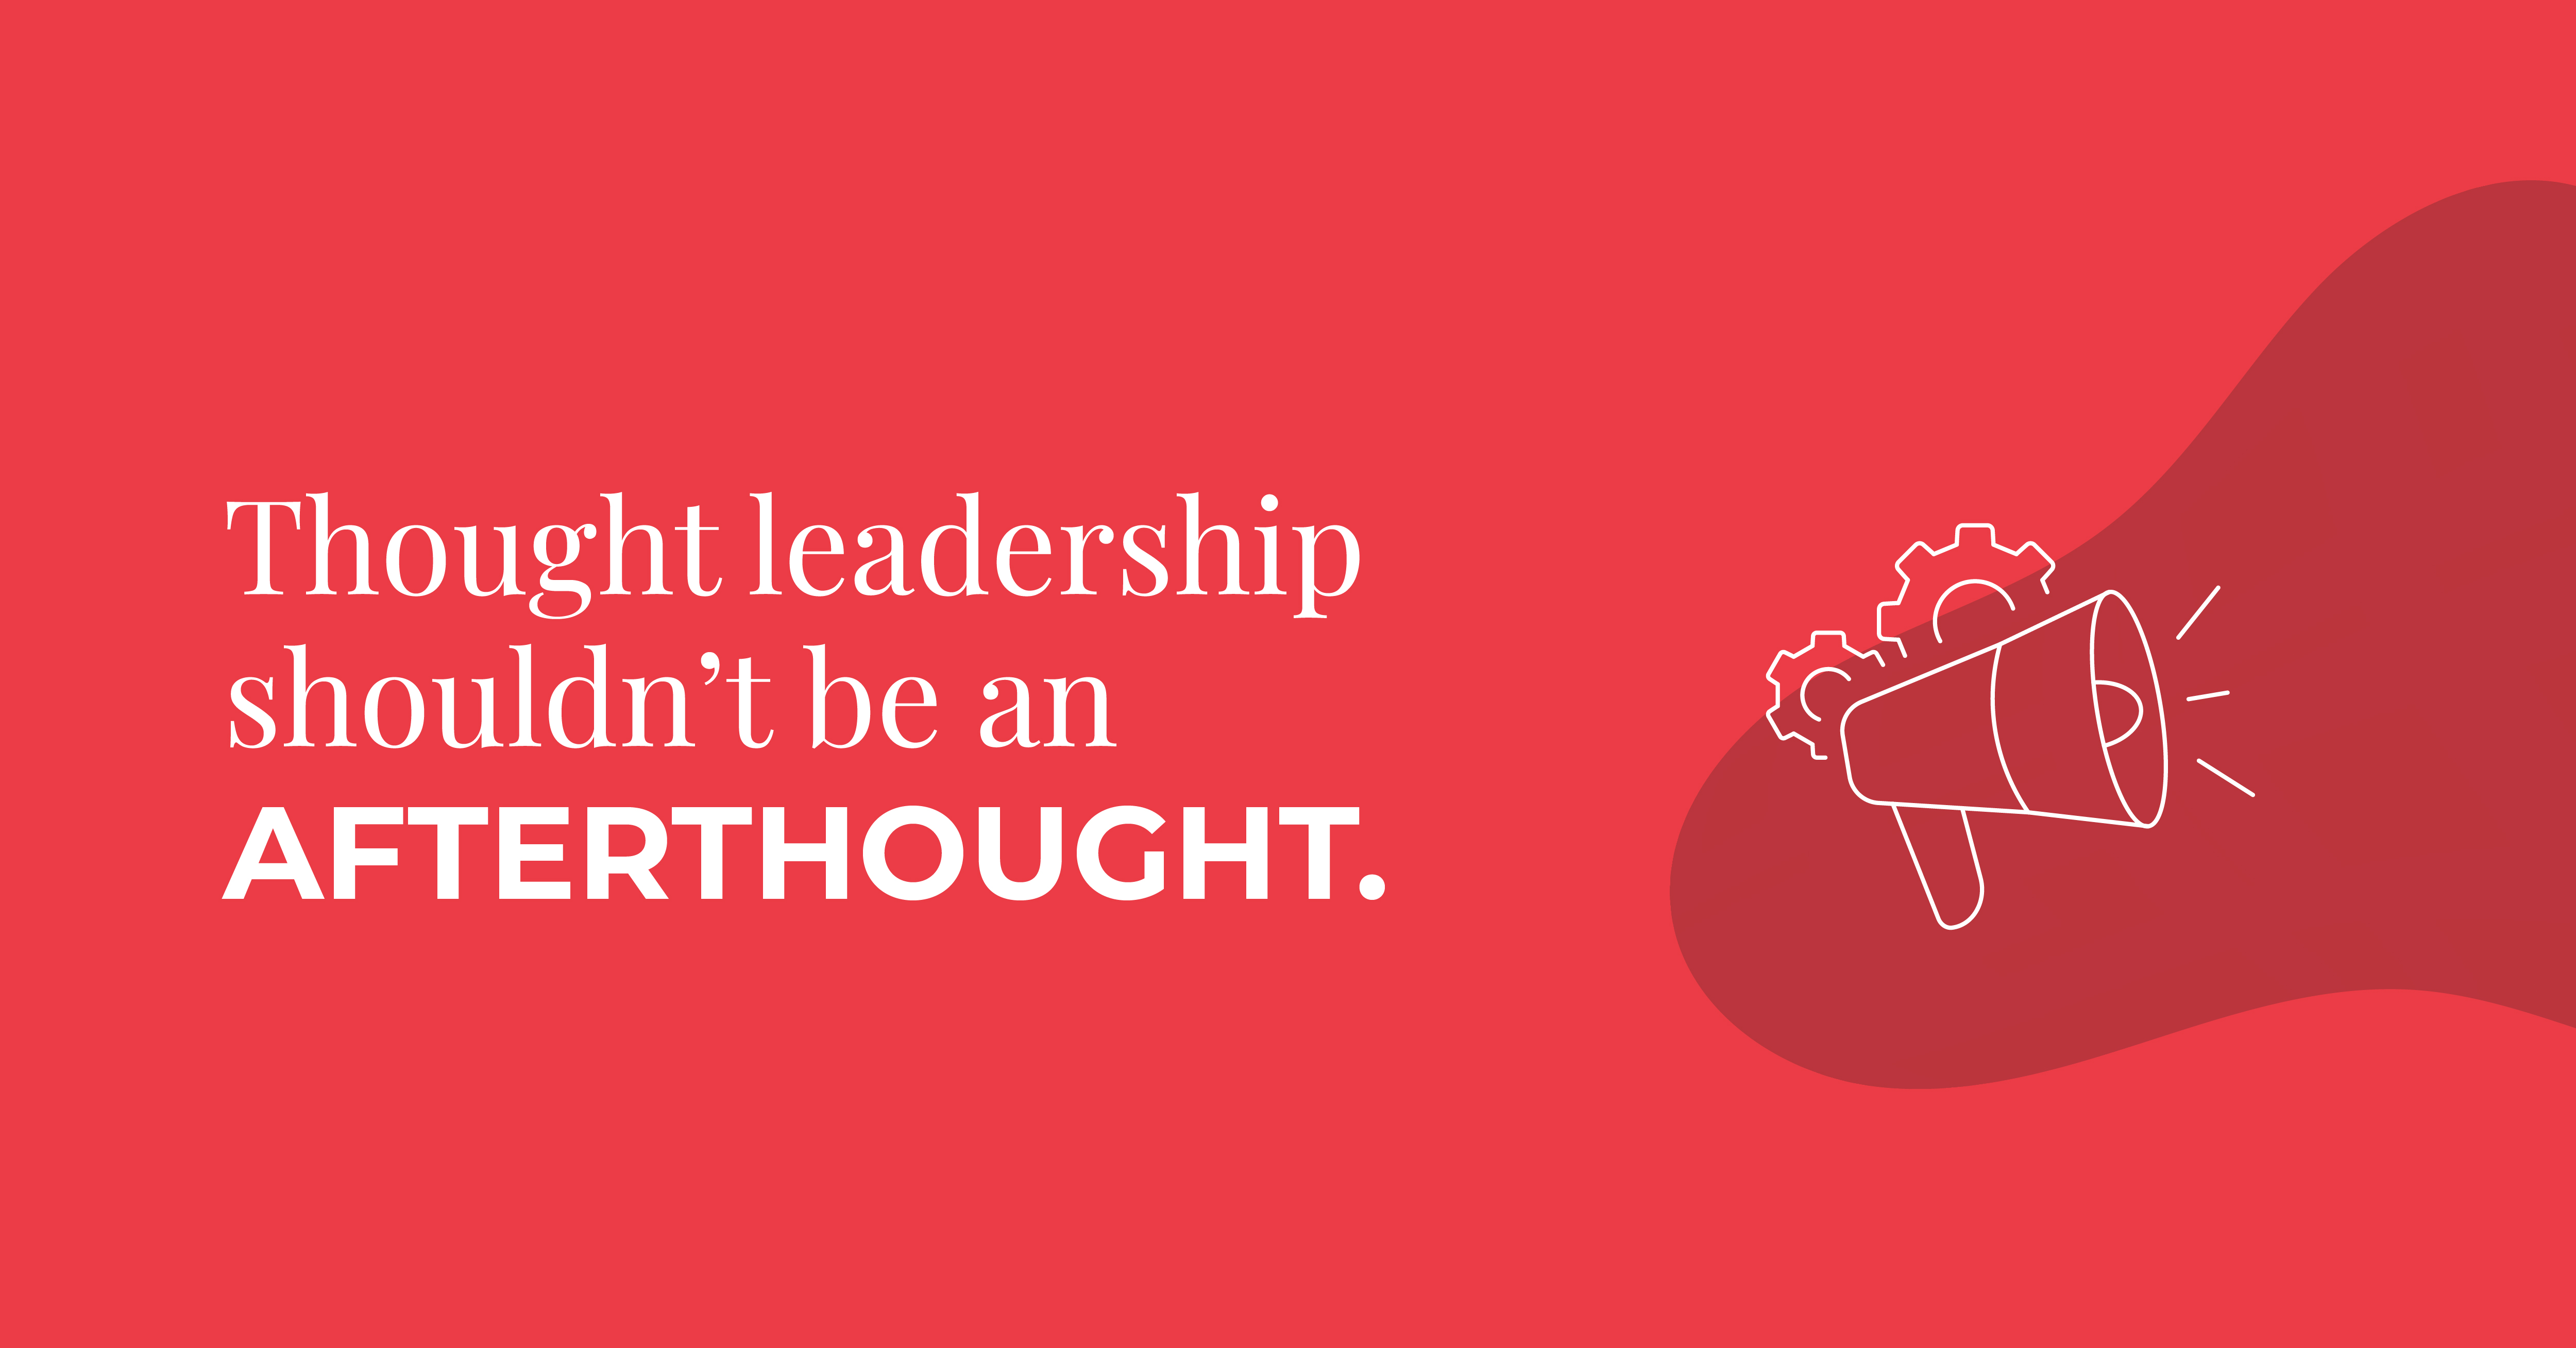 thought leadership shouldnt be an afterthought